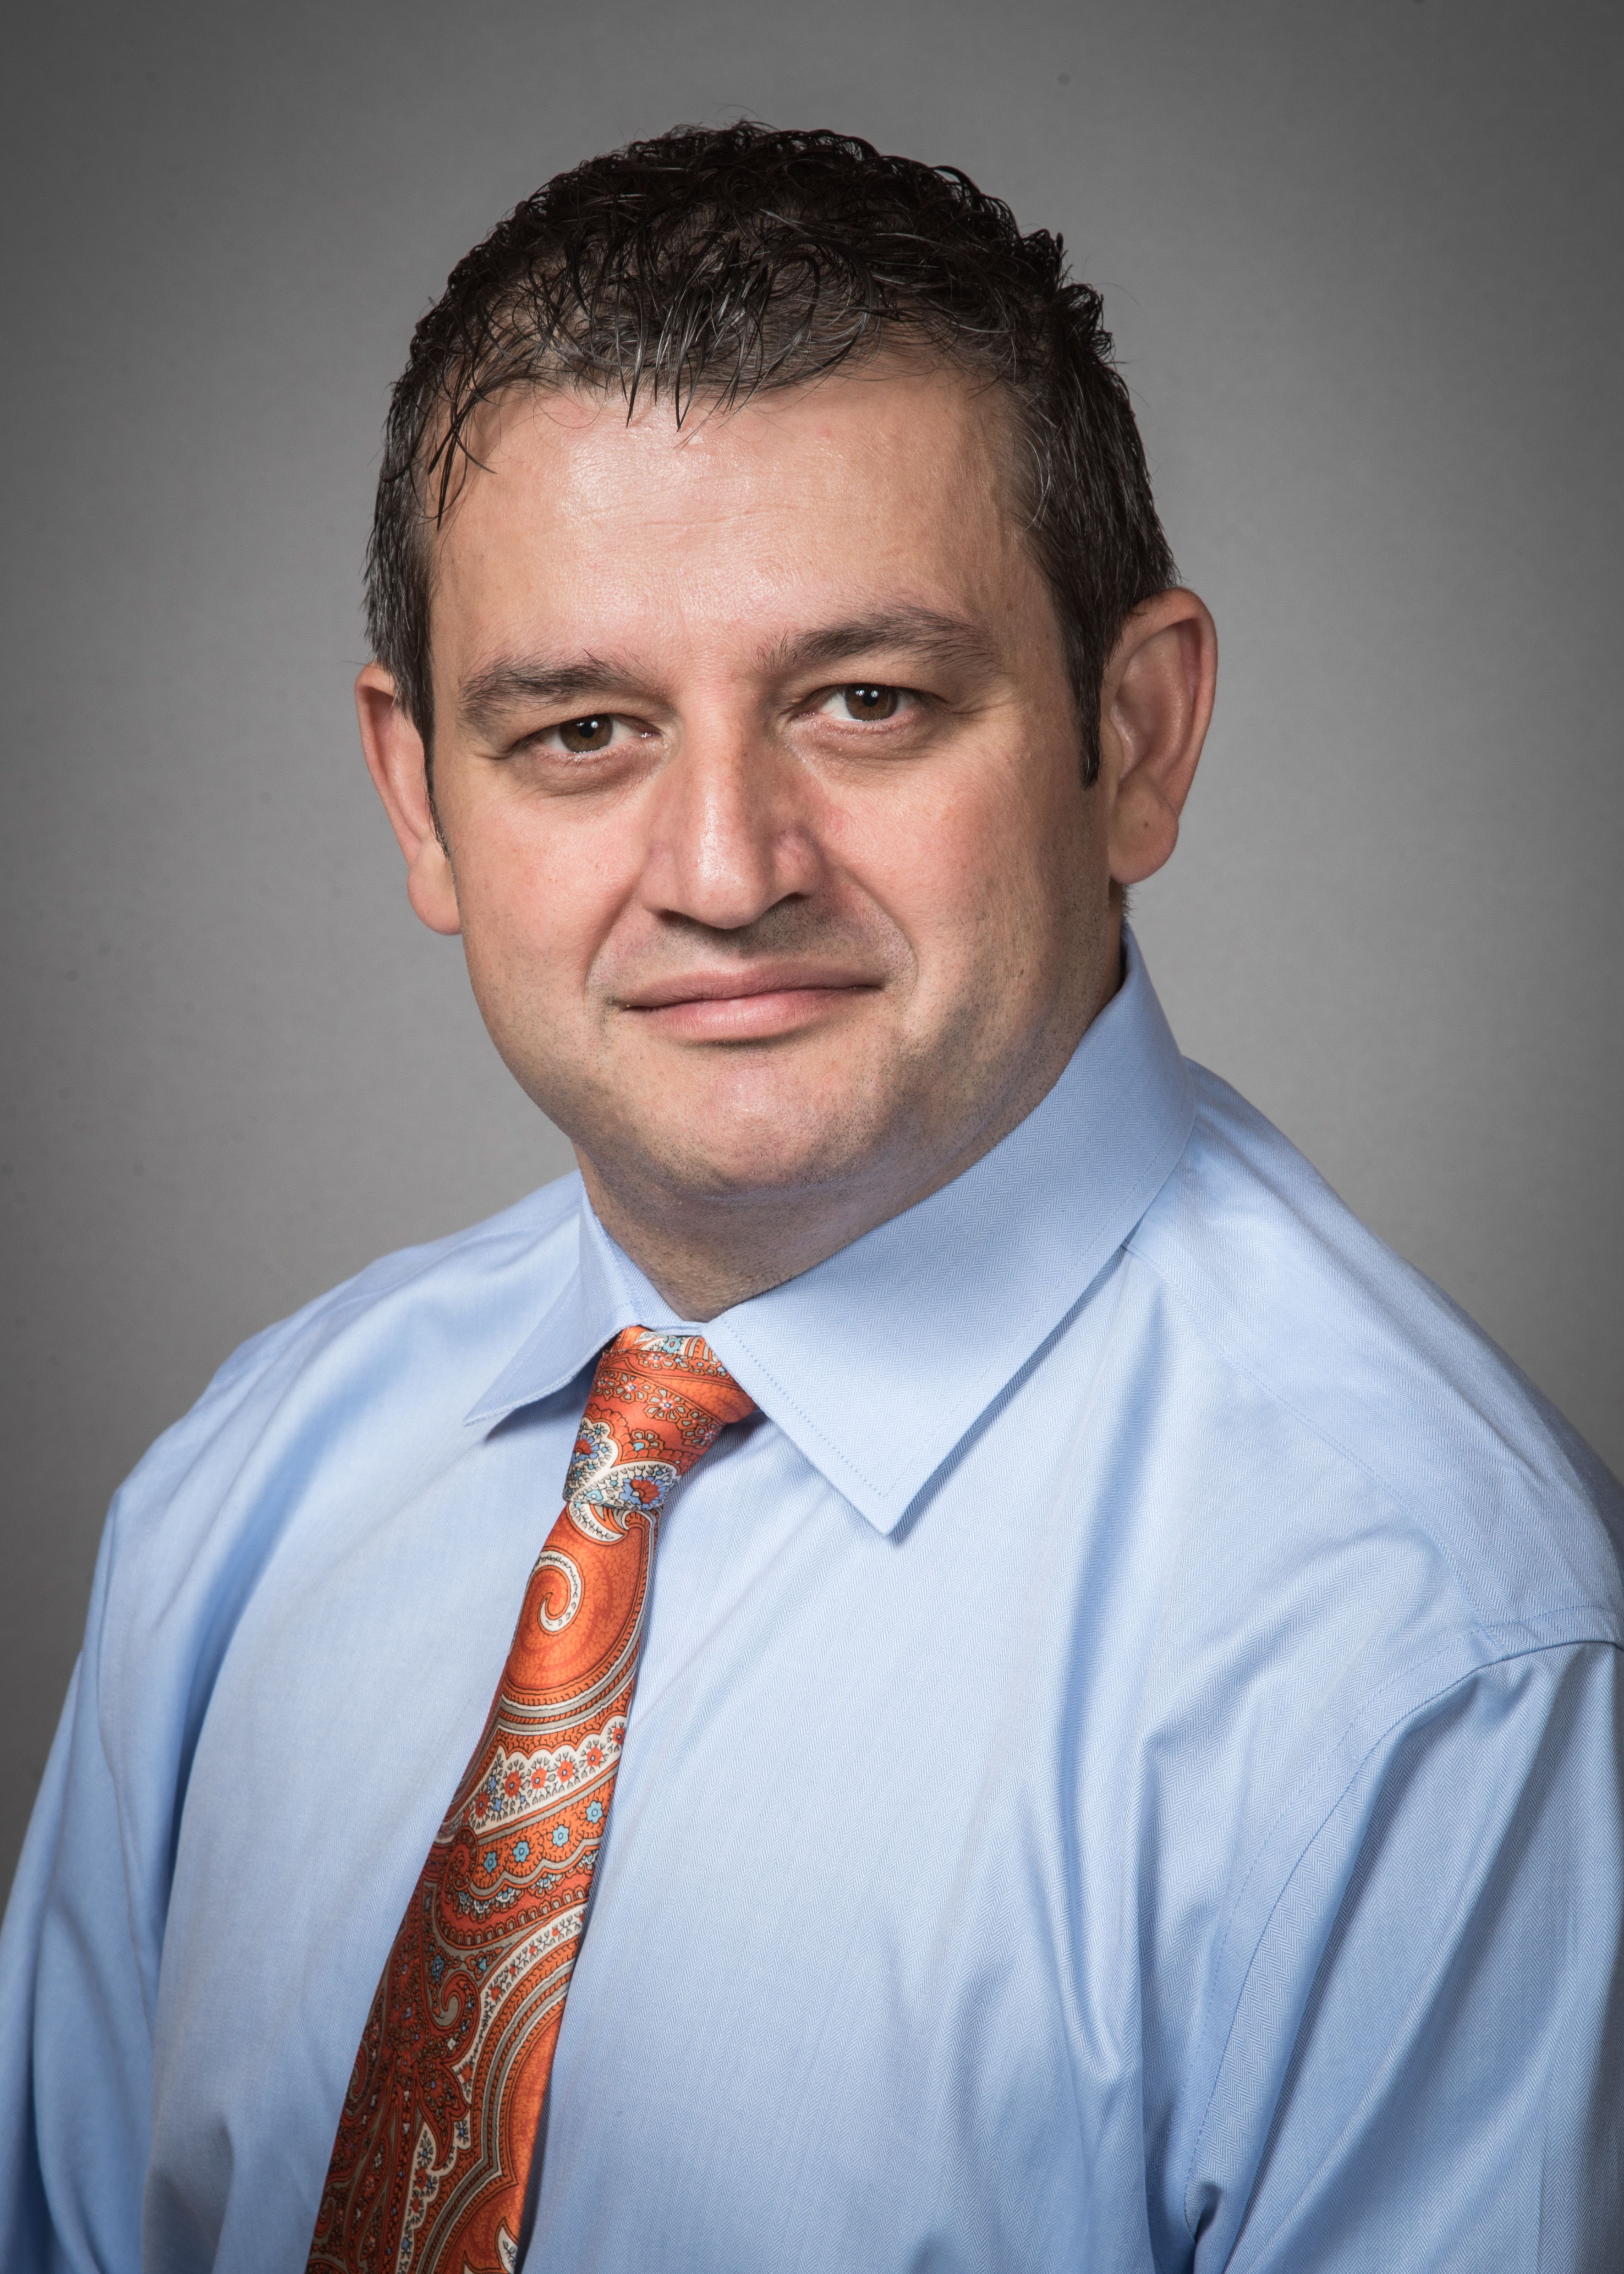 Brahim Ardolic, MD, wearing a blue shirt and orange tie